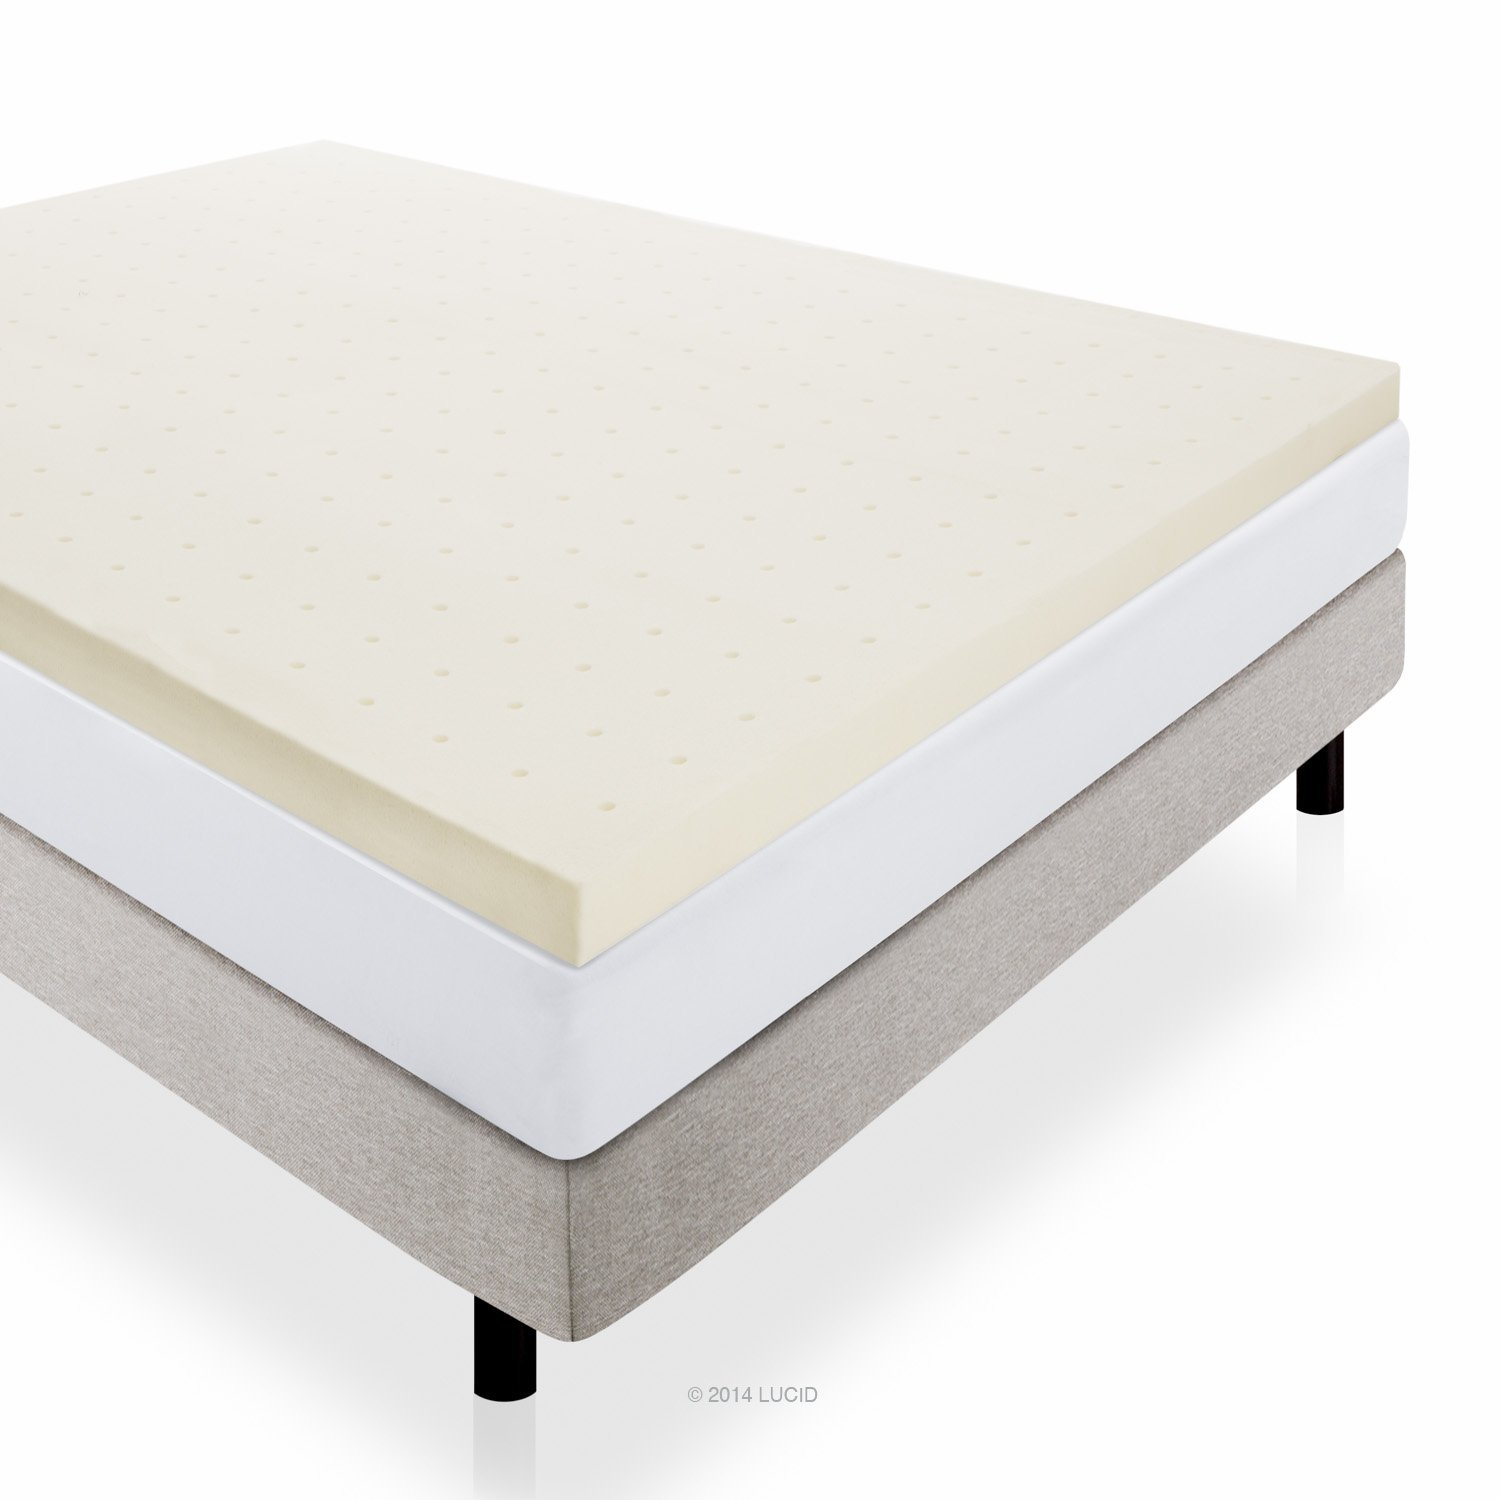 Best Mattress Toppers for Back Pain - LUCID 3-Inch Ventilated Memory Foam